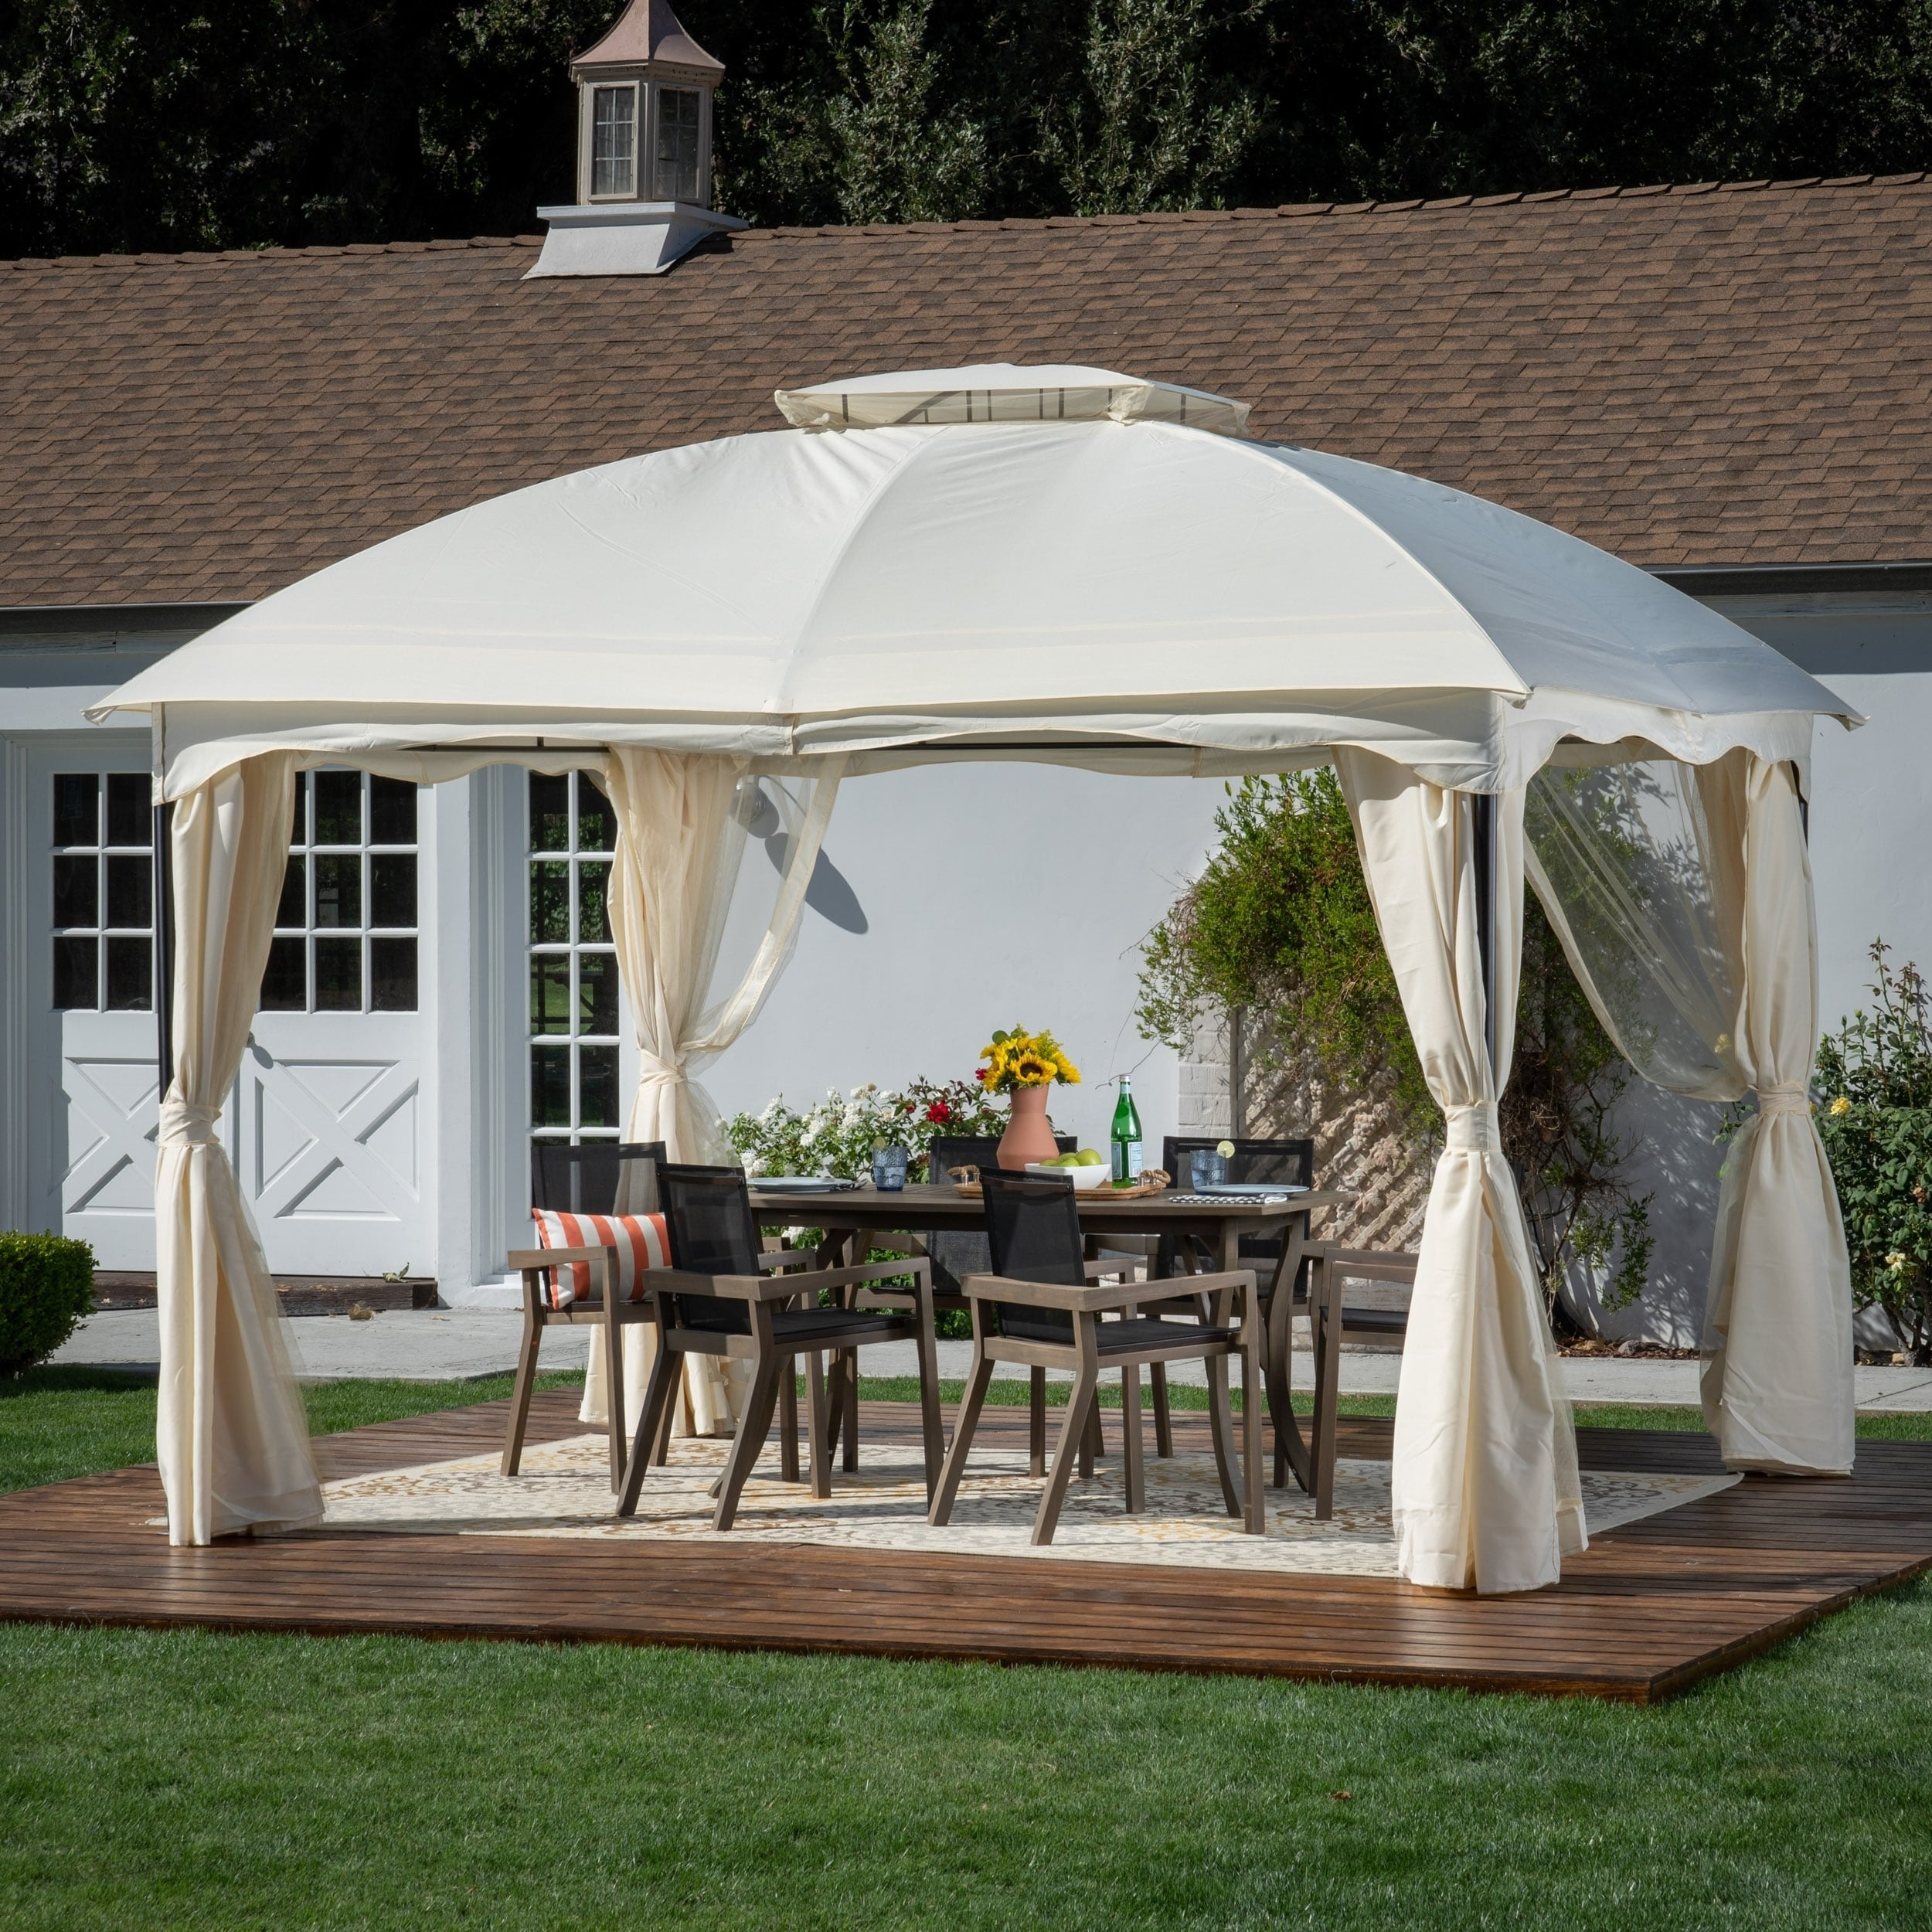 Gravina Outdoor 12 By 10 Water Resistant Fabric And Steel Gazebo Christopher Knight Home On Free Shipping Today 22632276